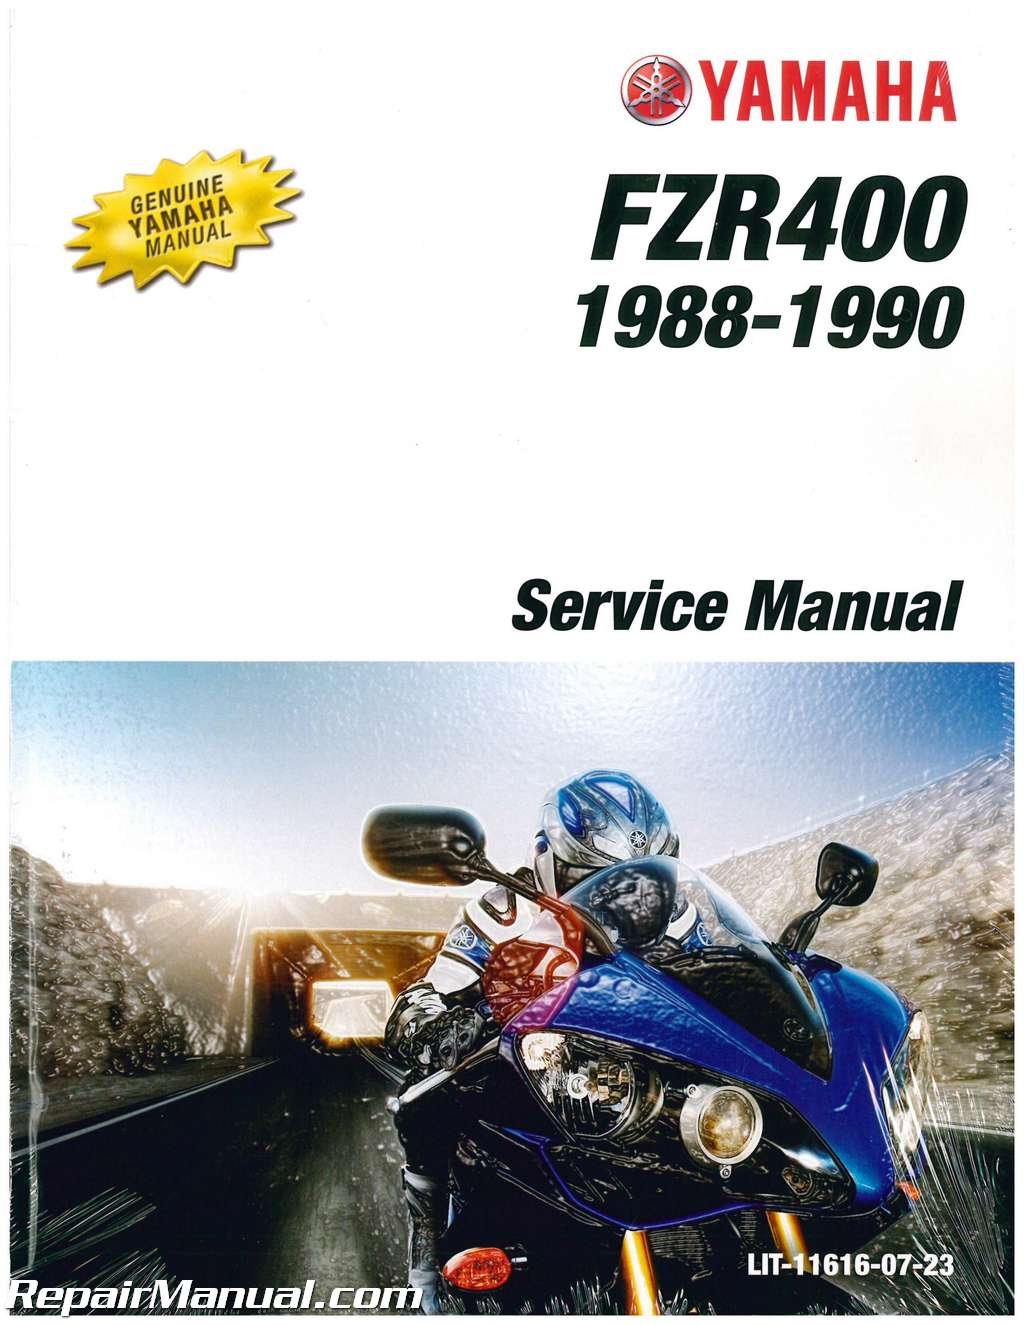 1988 1990 yamaha fzr400 motorcycle service manual. Black Bedroom Furniture Sets. Home Design Ideas